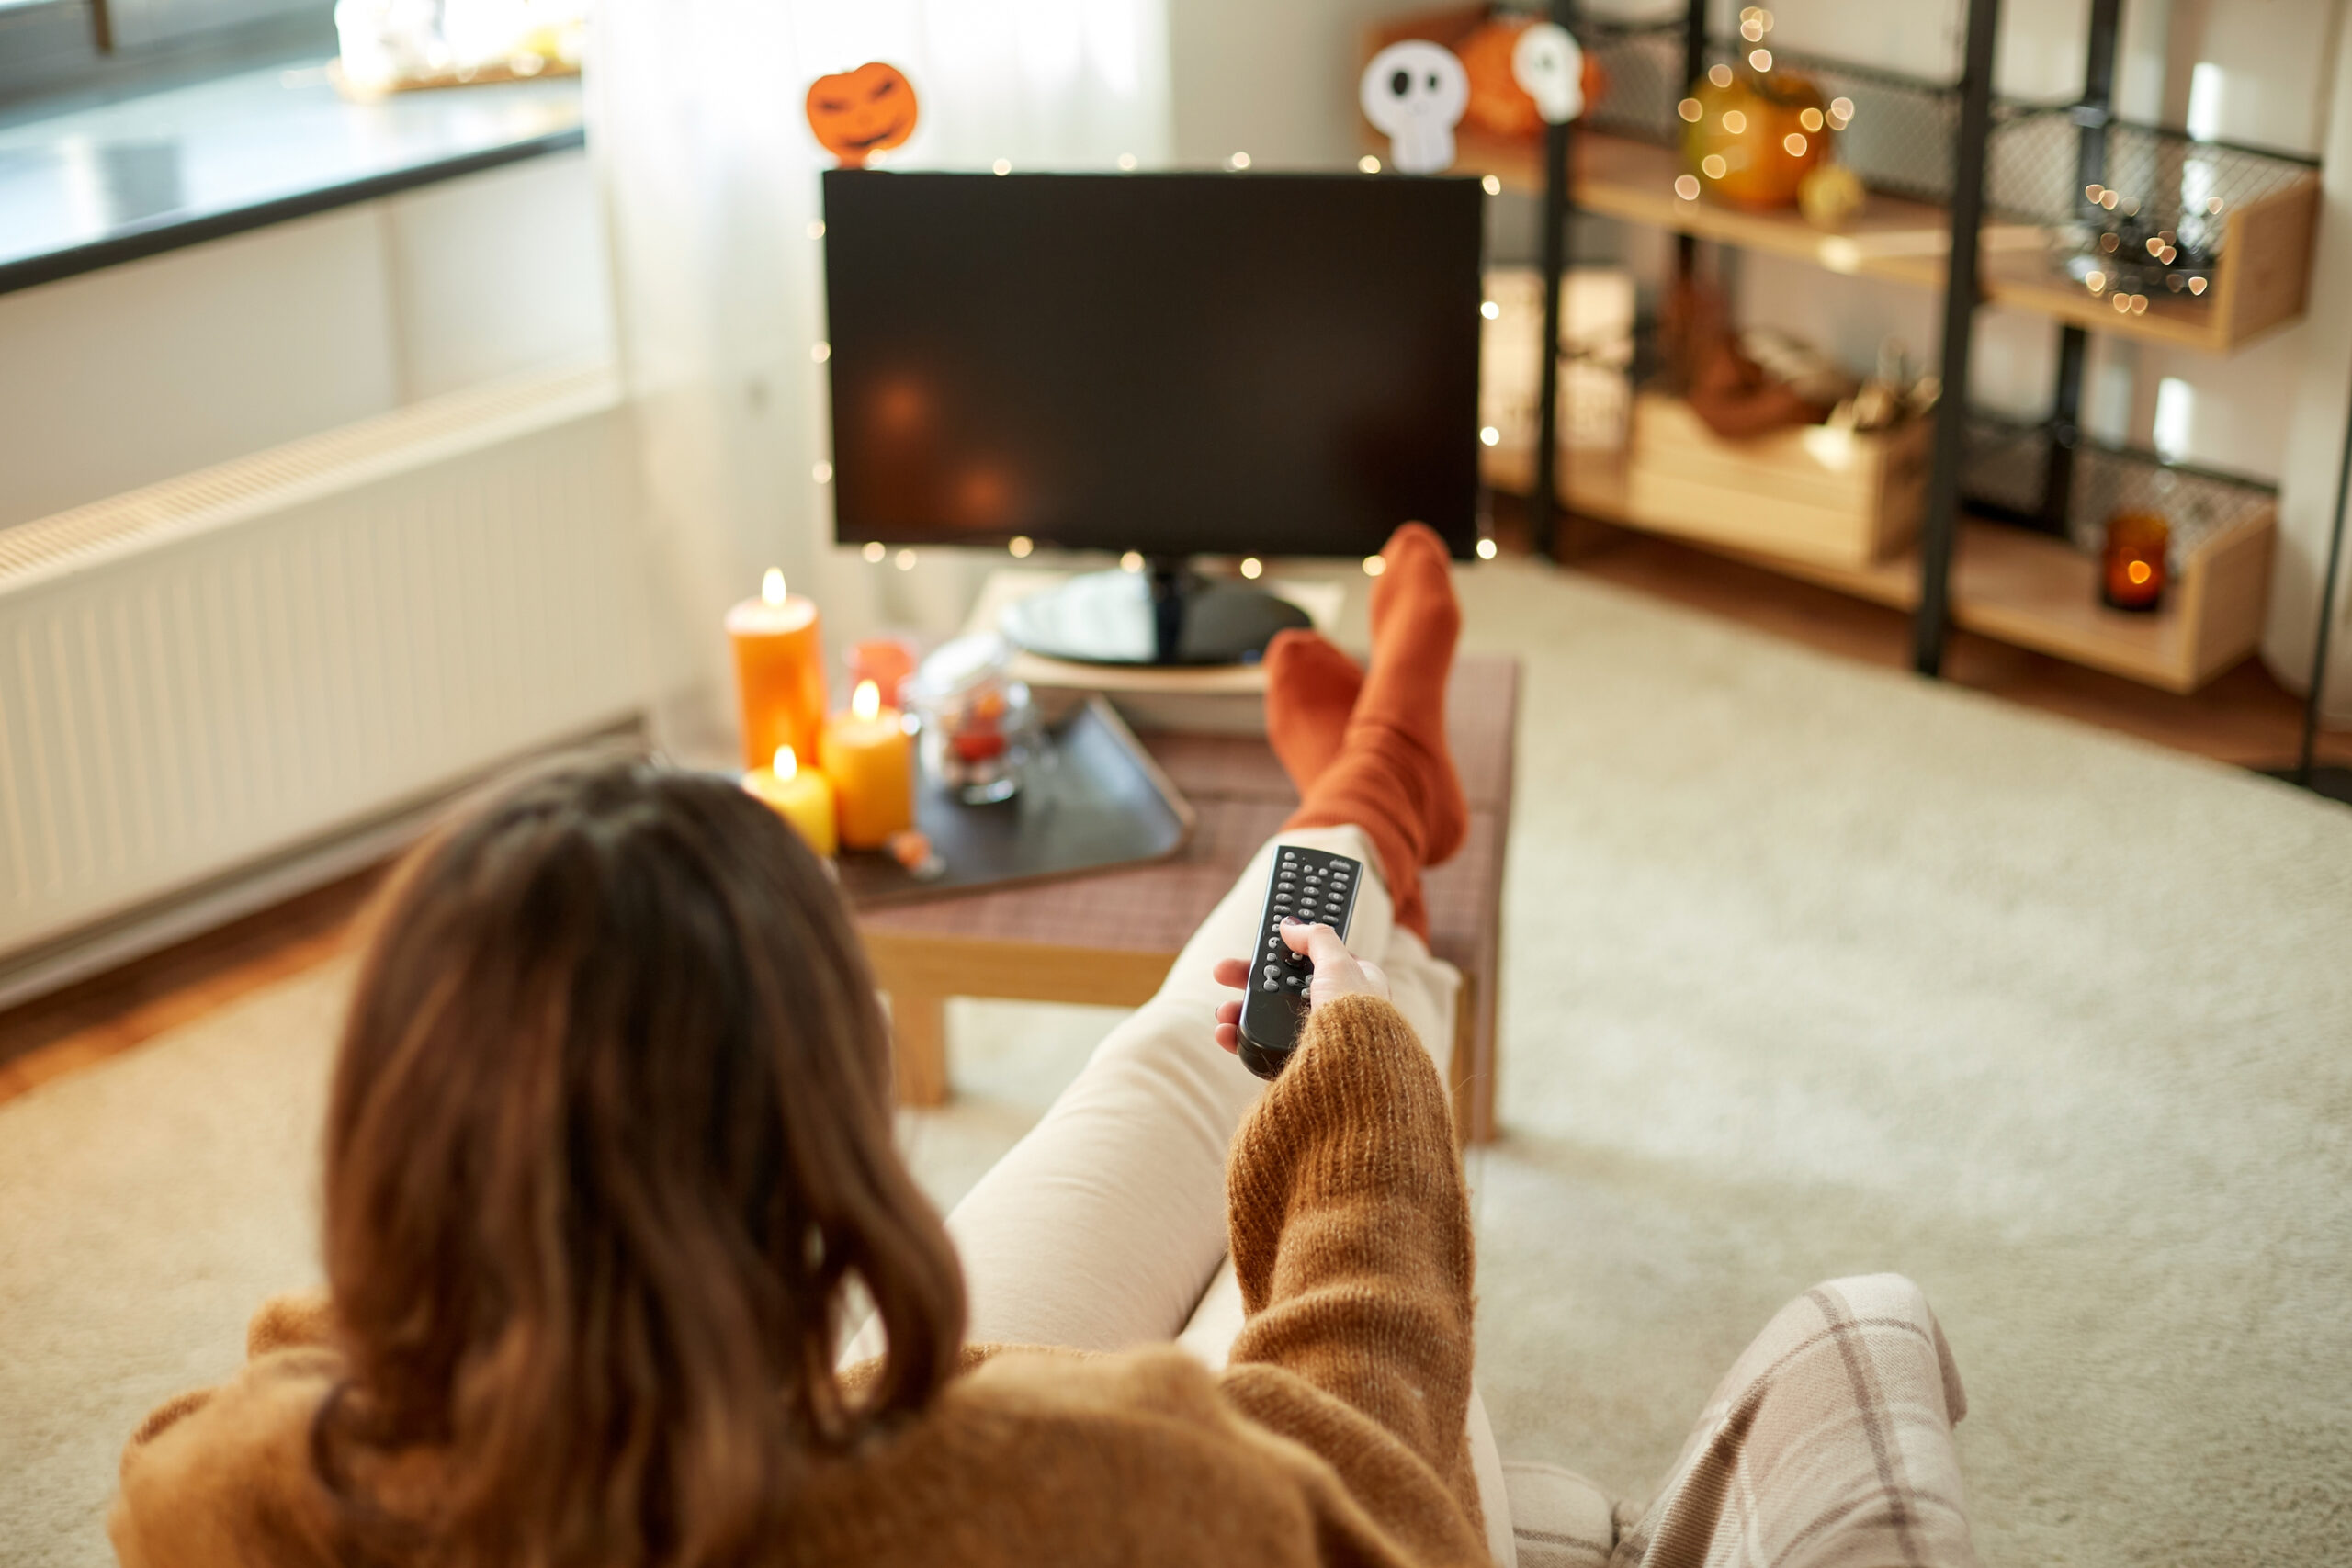 woman getting ready to watch tv with Halloween decorations